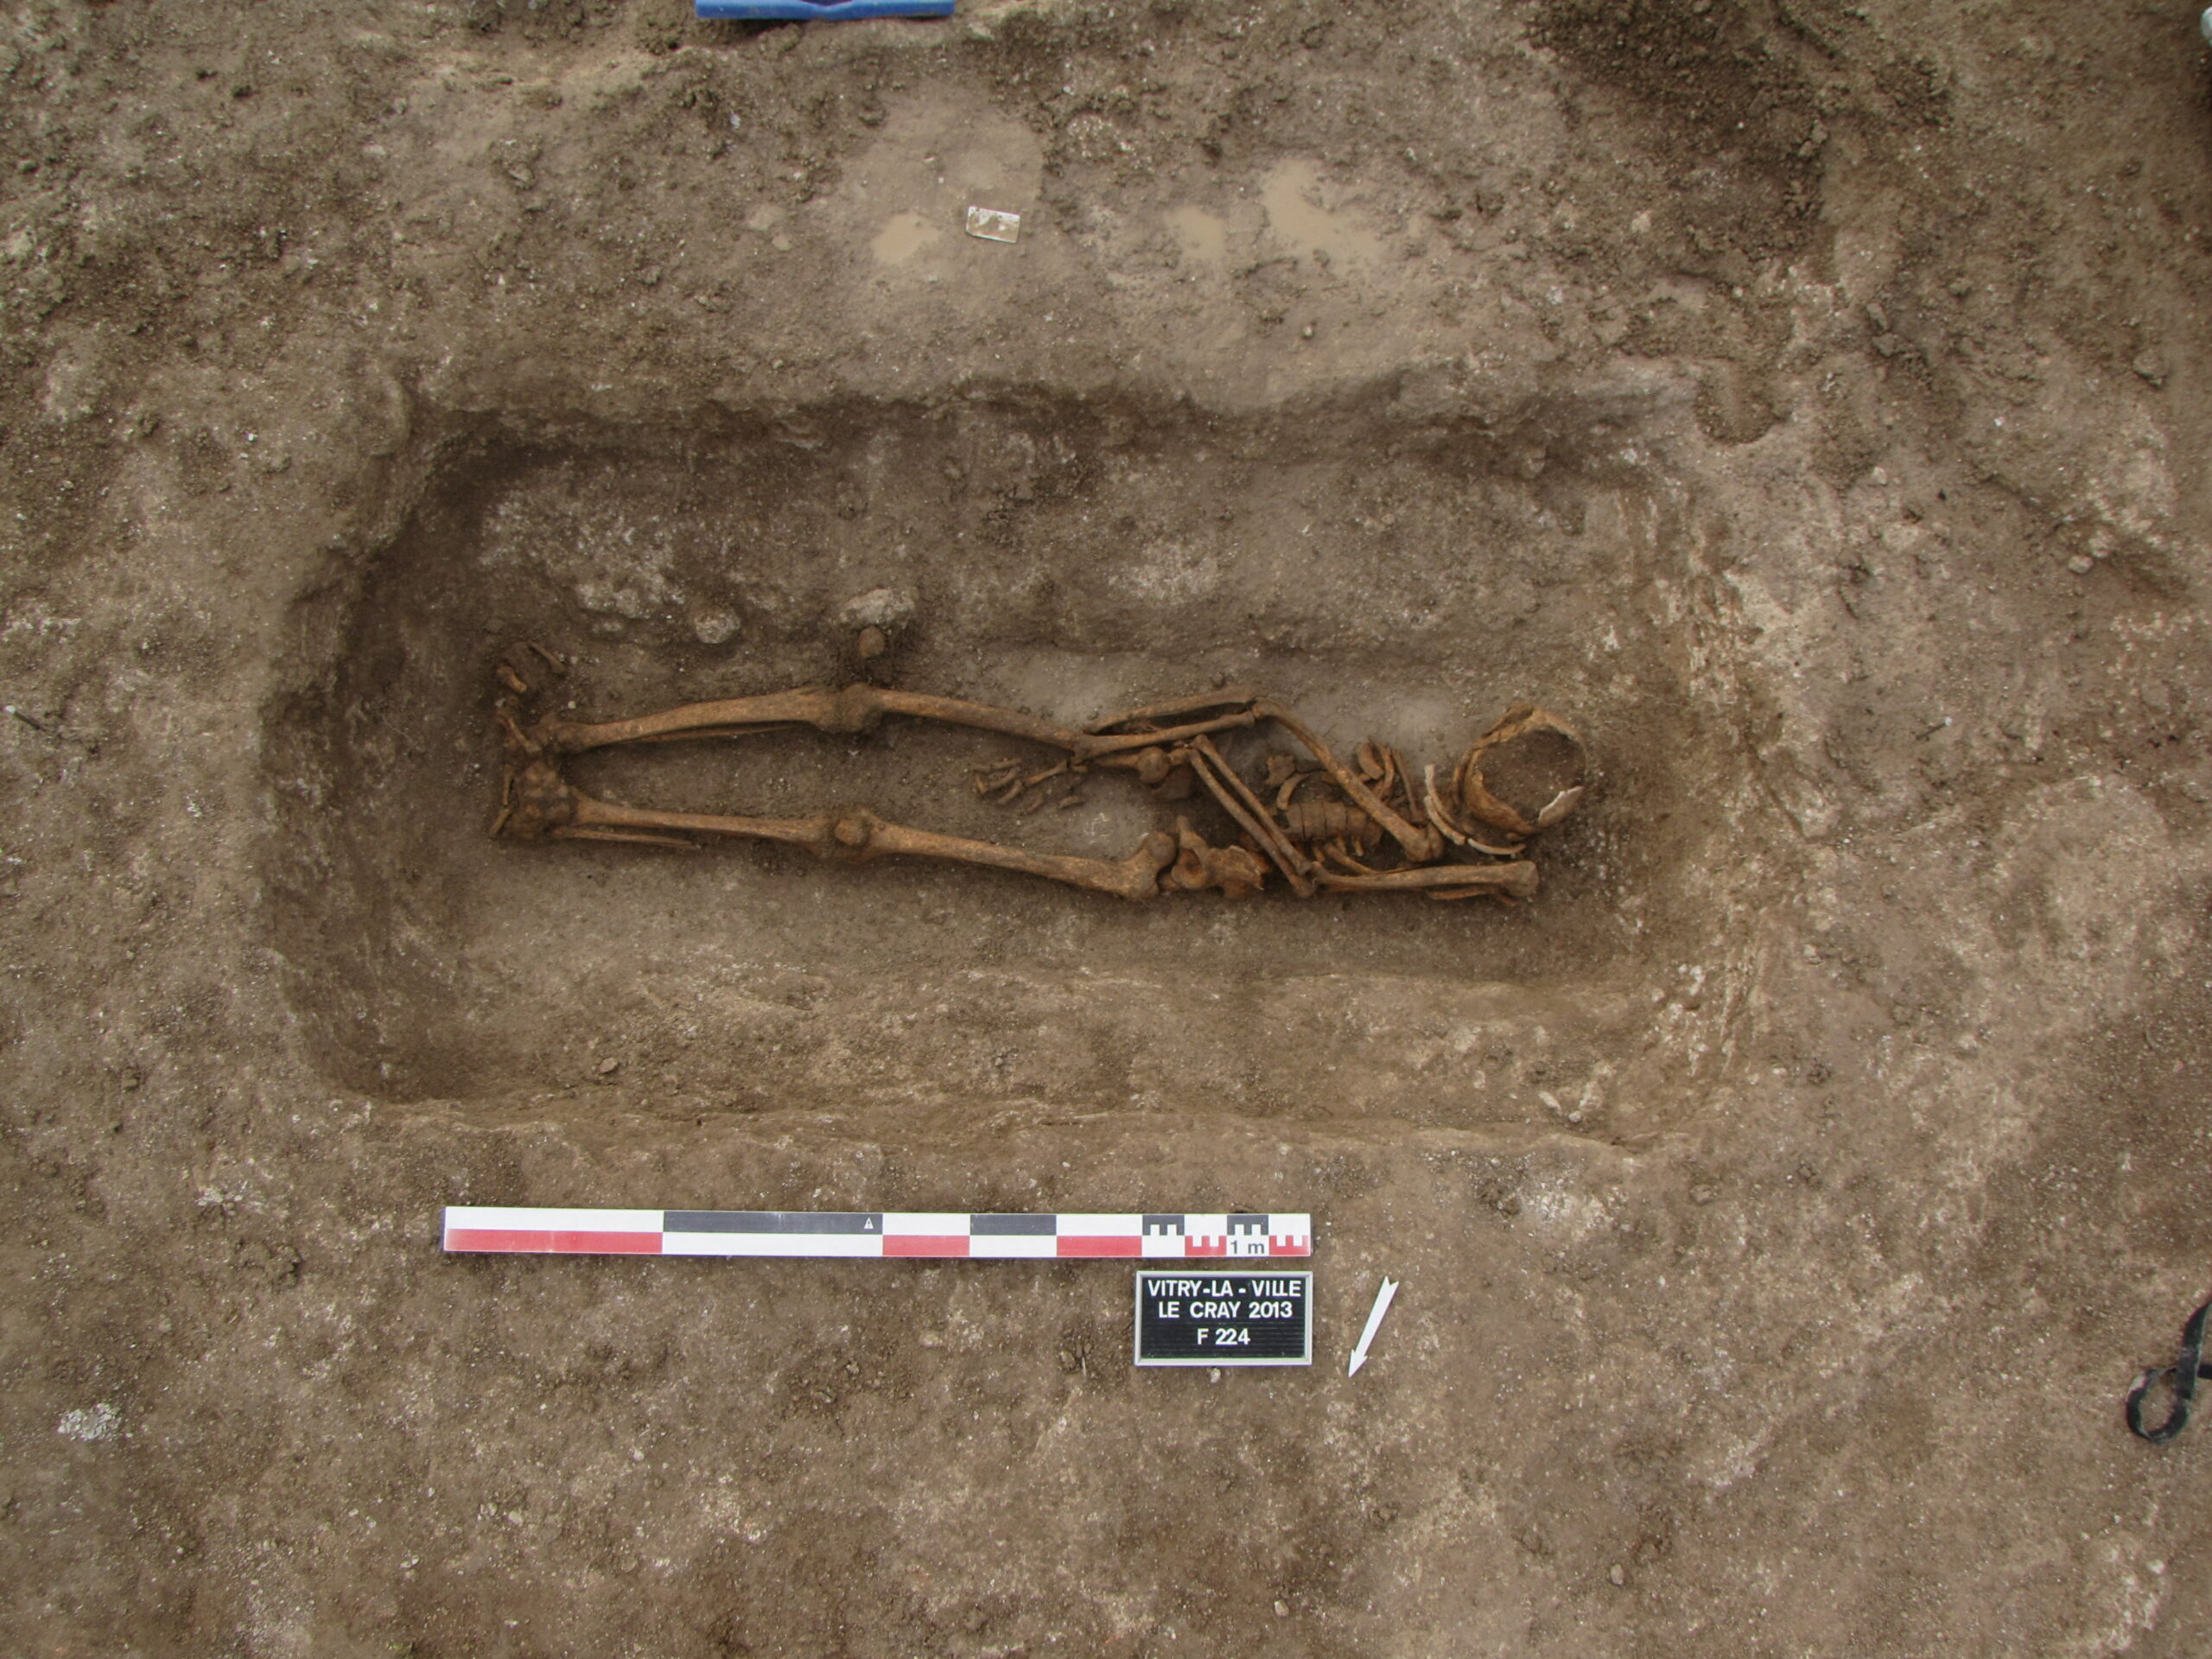 Reopening graves a widespread practice in early medieval Europe, research reveals